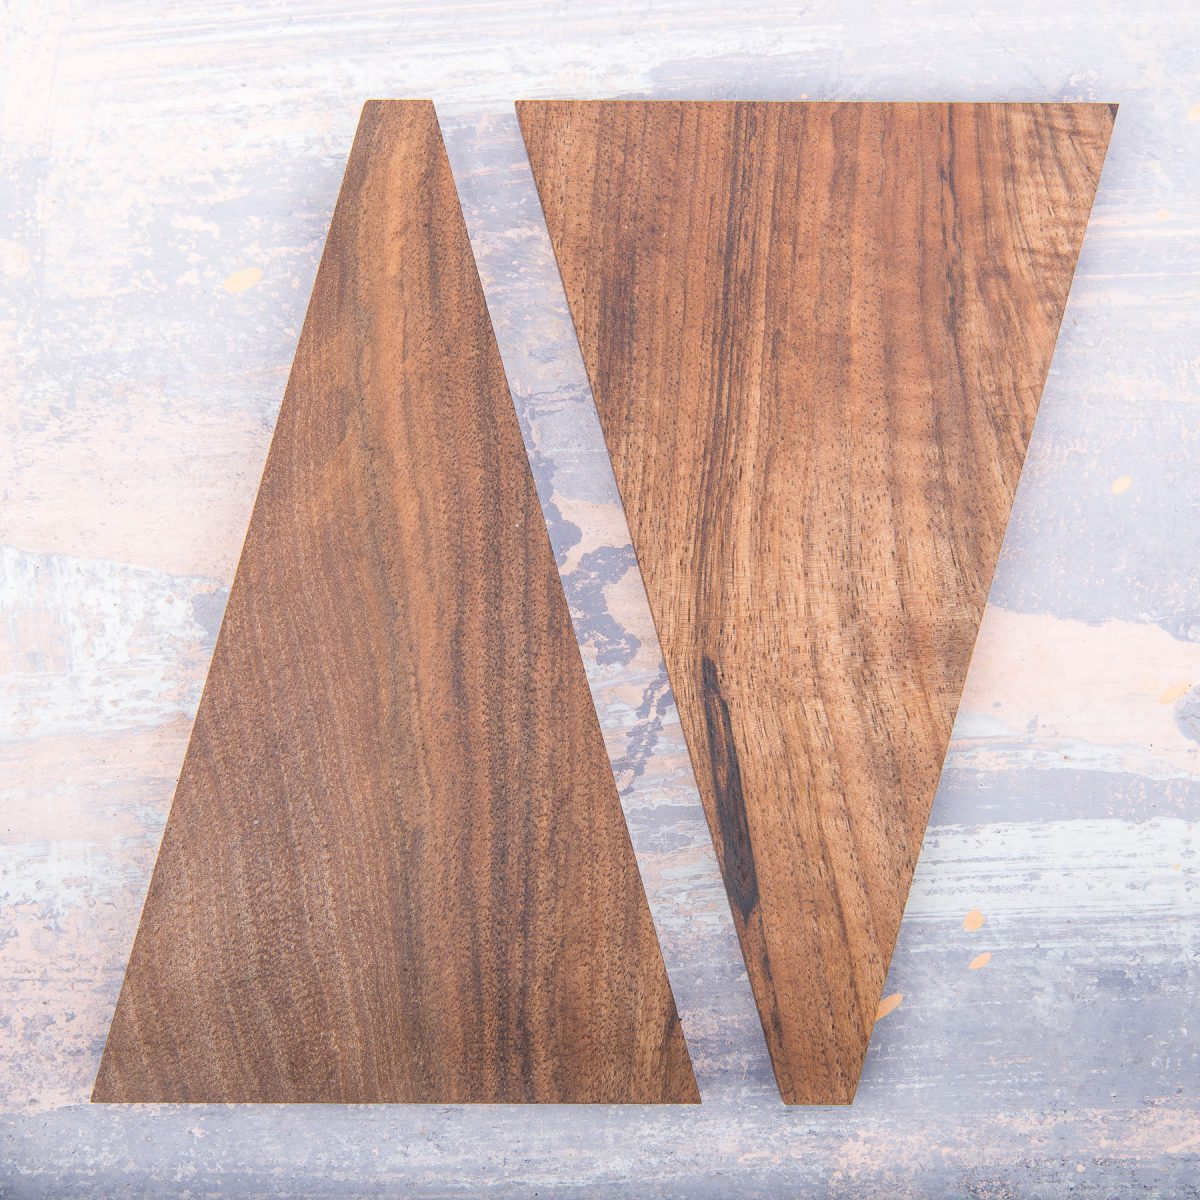 Jan Hendzel Studio samples european walnut